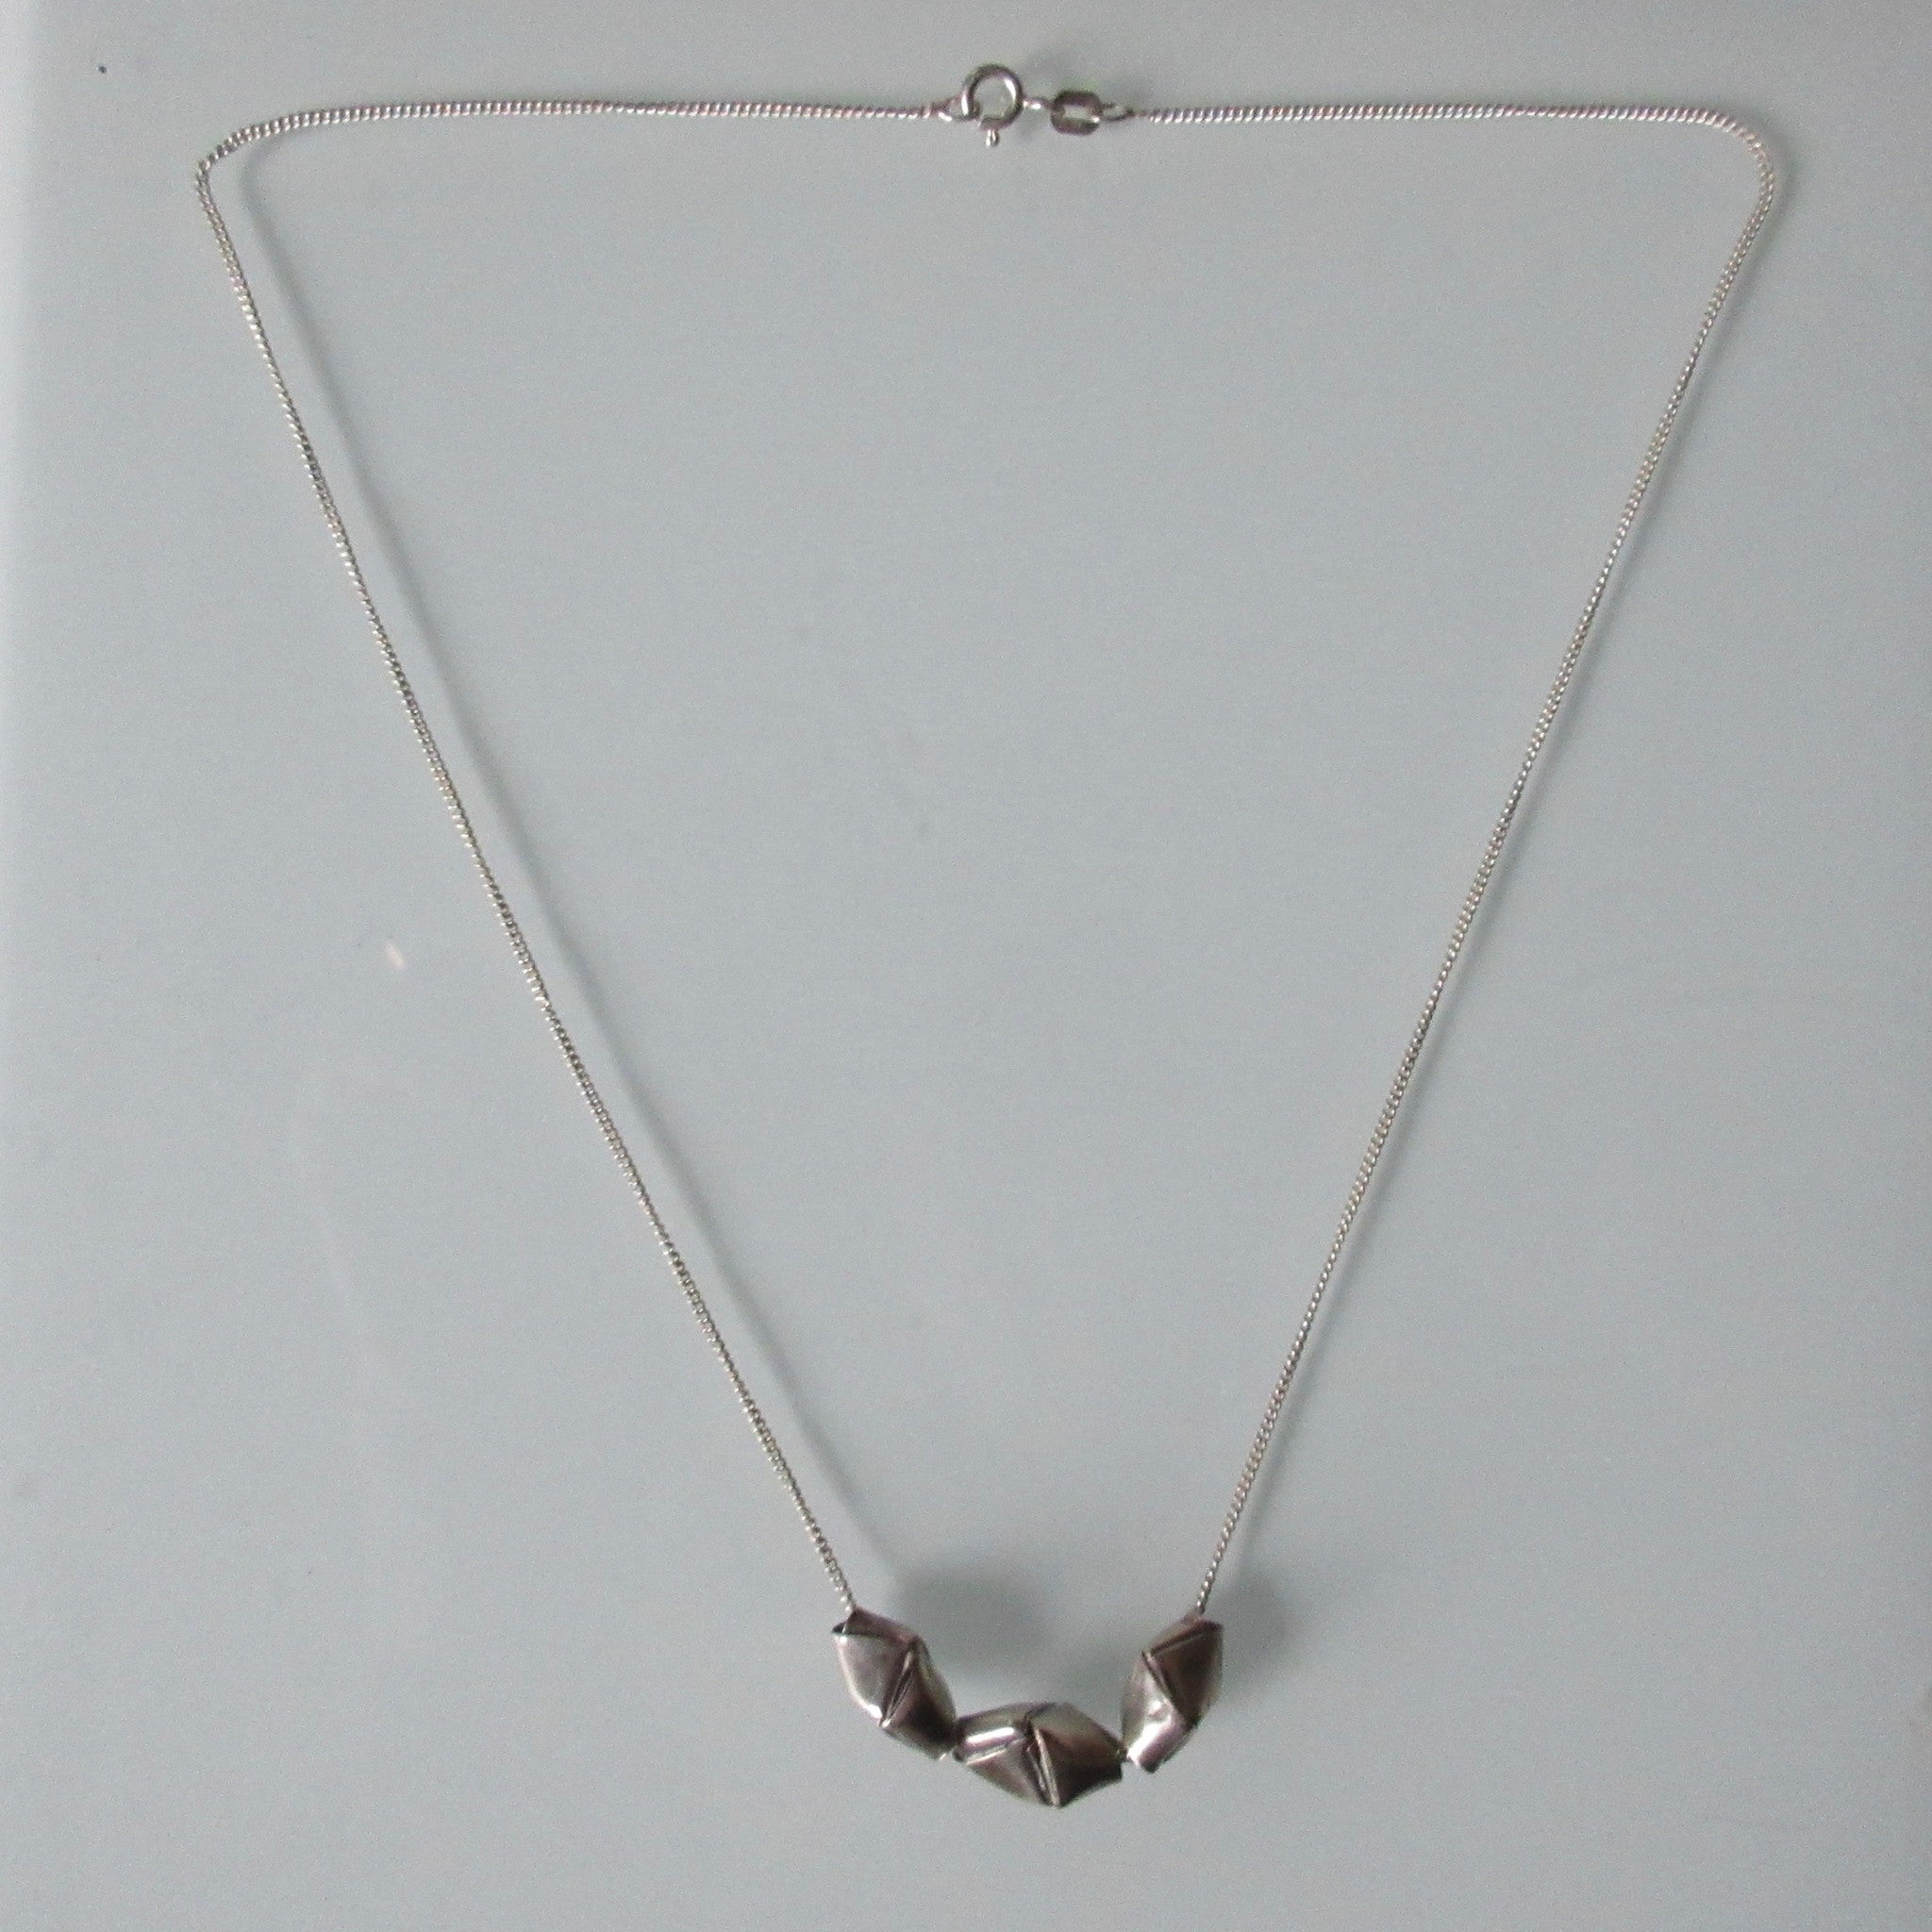 Origami Beads on Sterling Silver Chain 16""